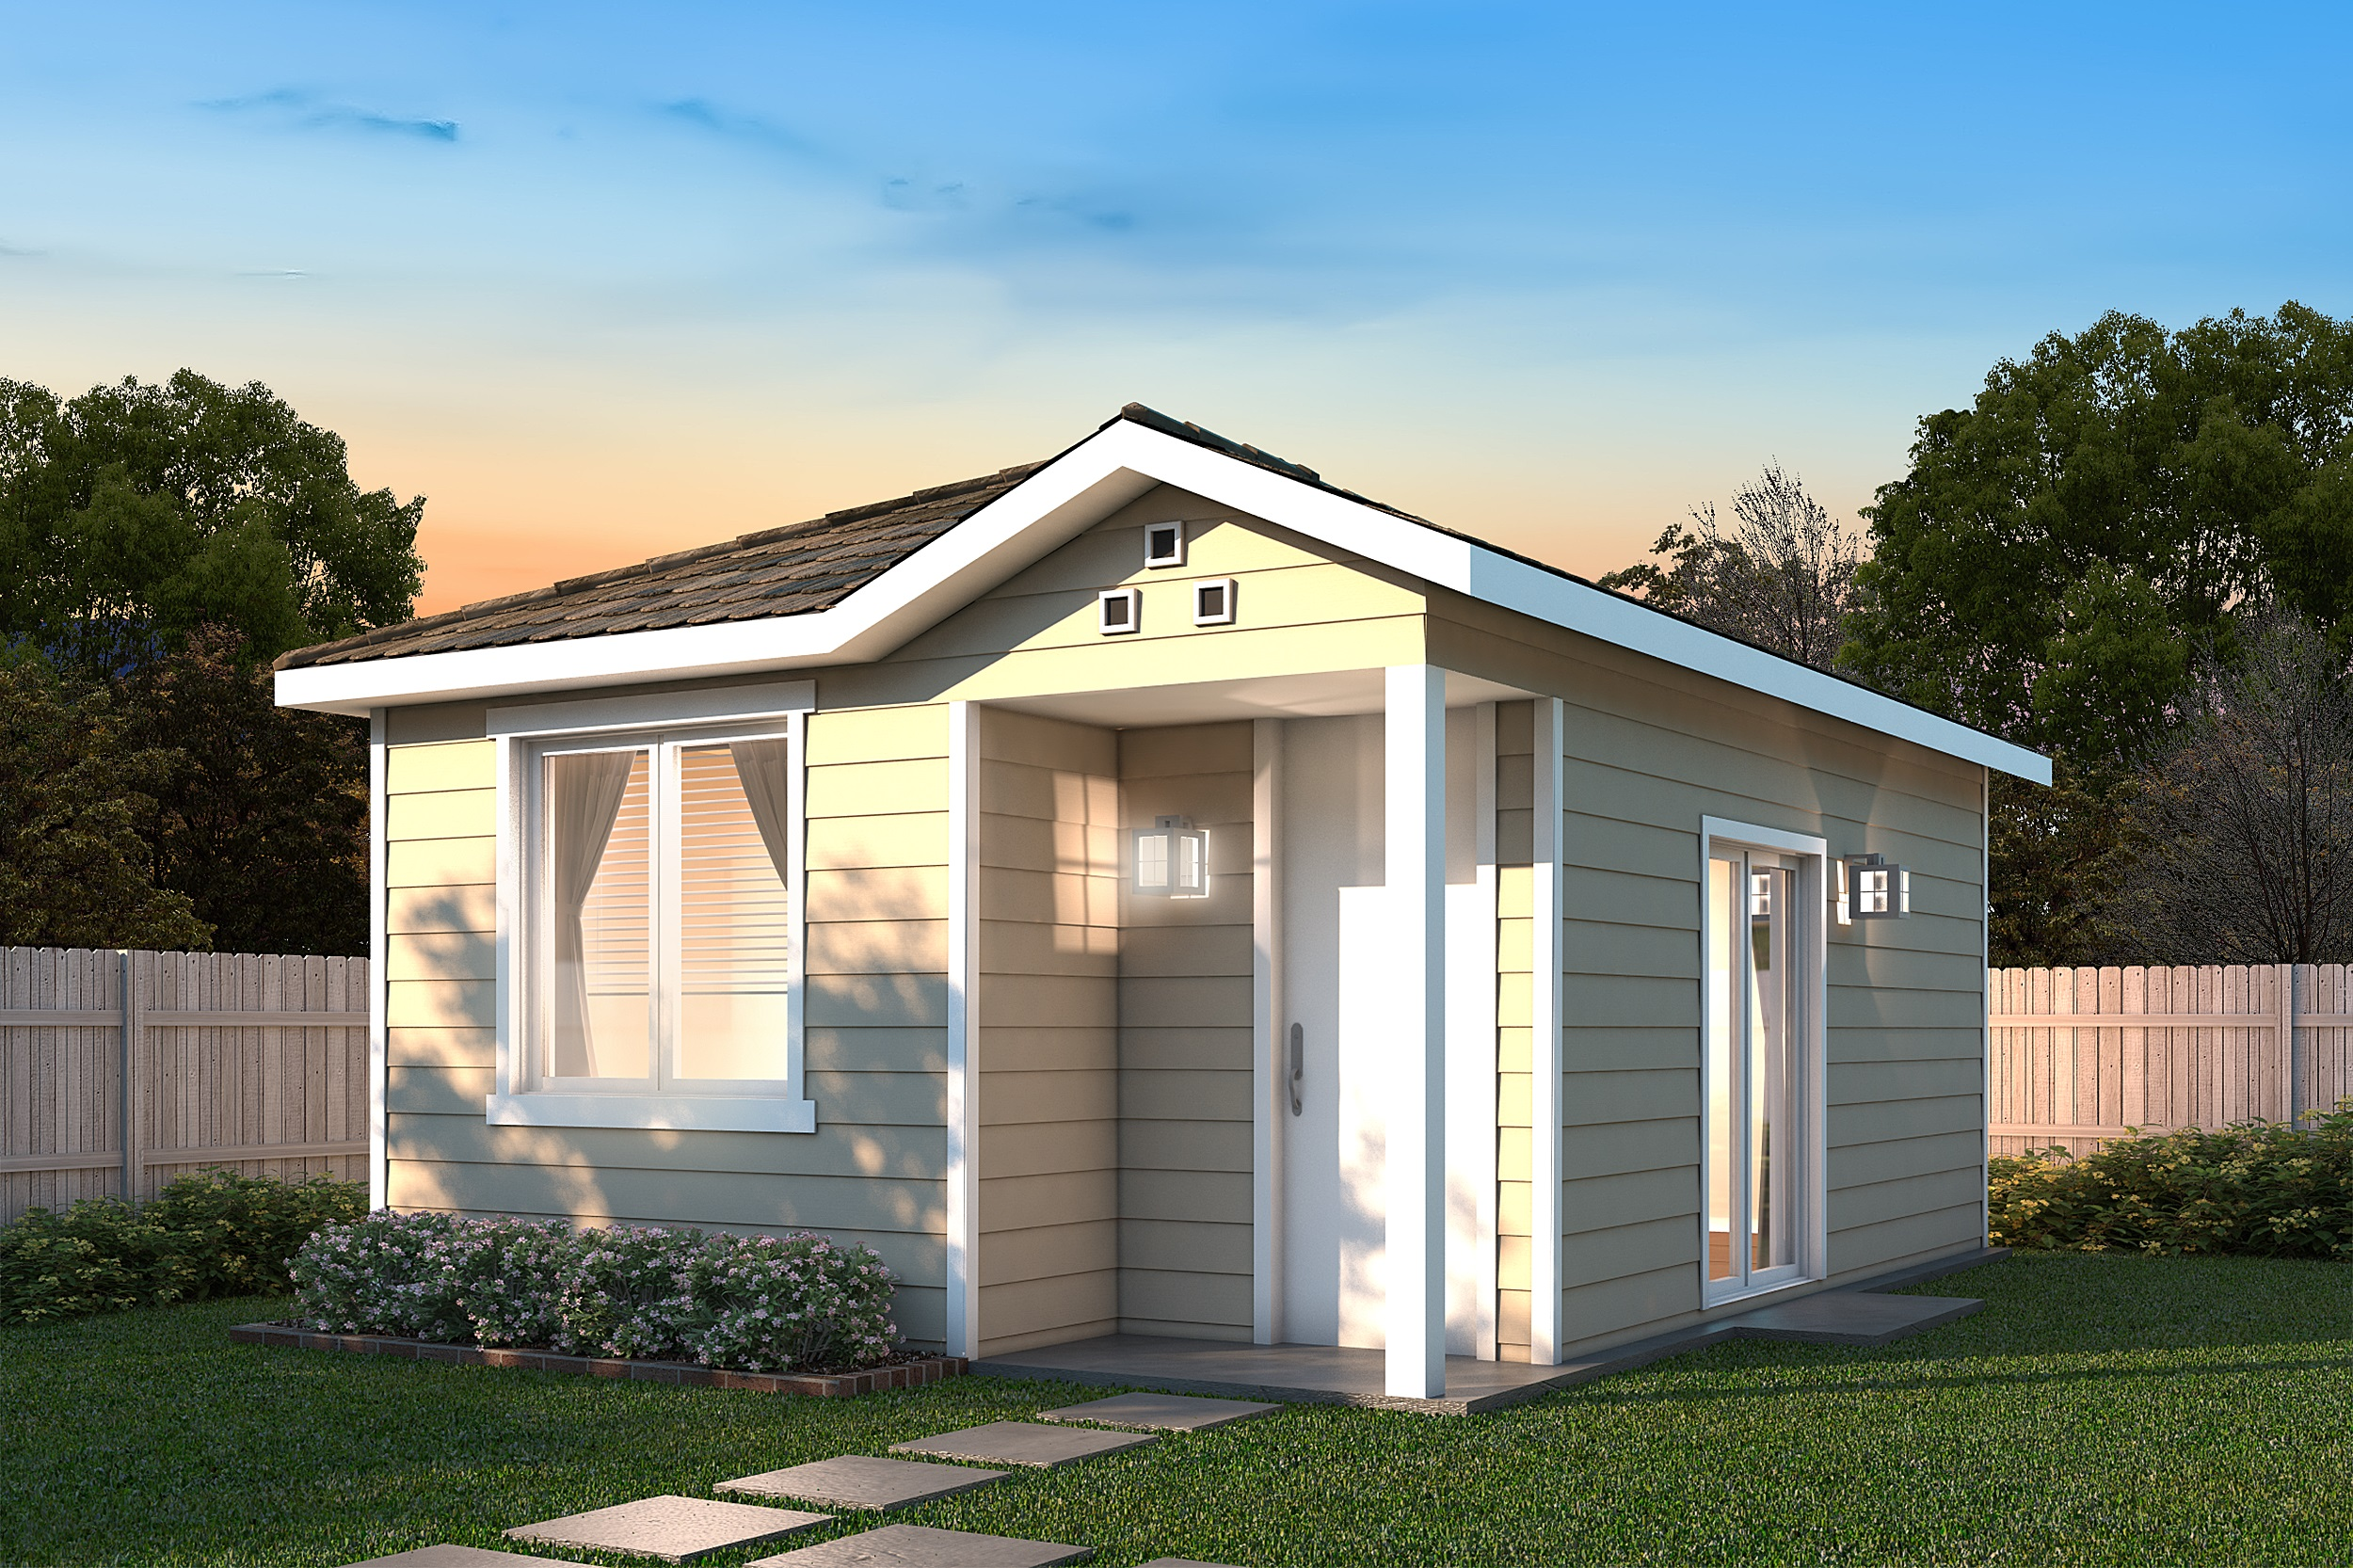 G j gardner homes debuts 10 new granny flat designs for Granny cottage plans